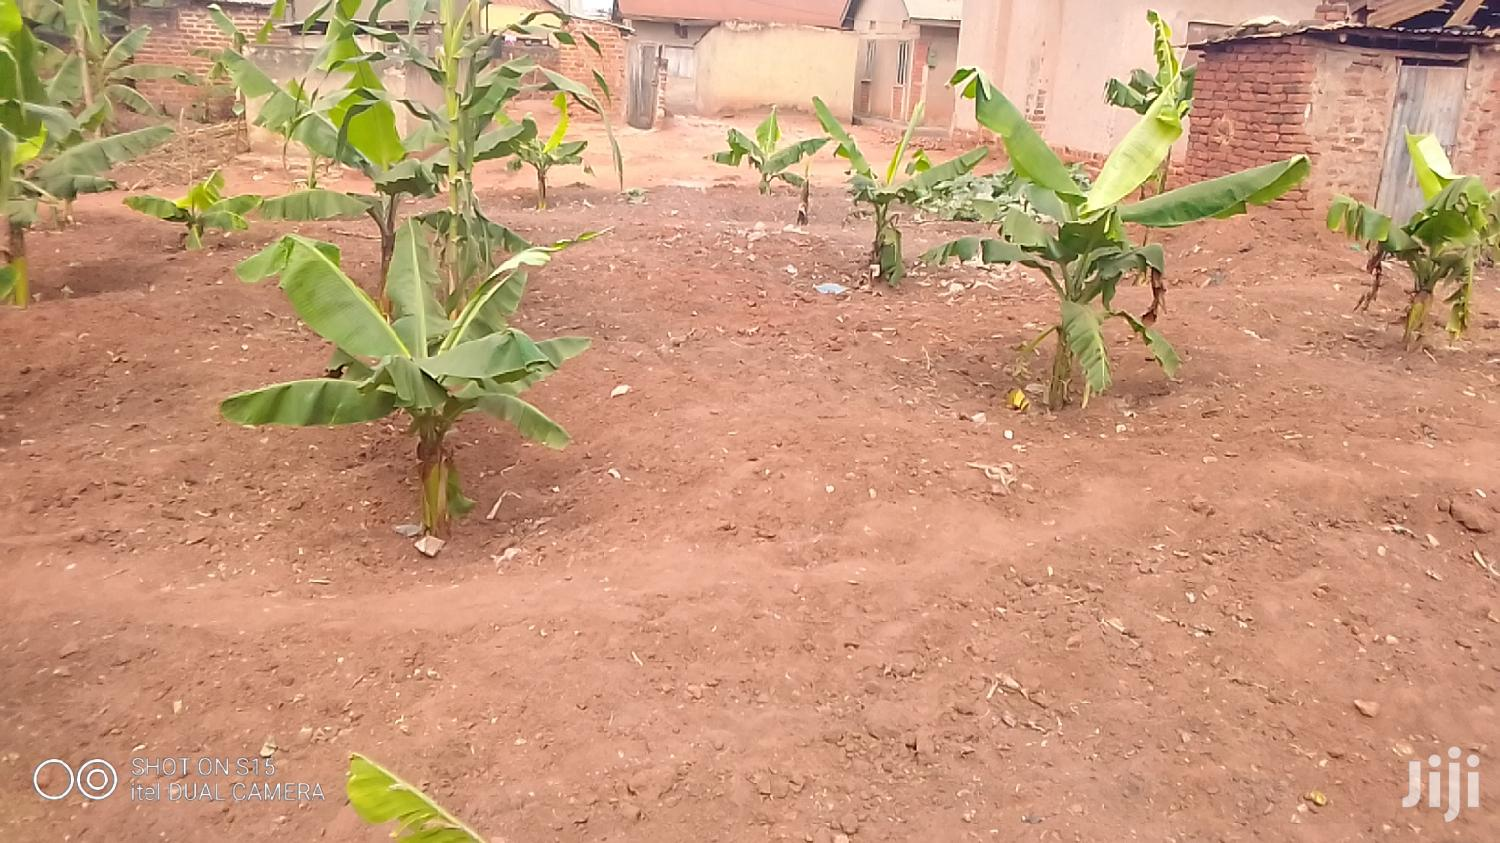 Land on Iganga Highway for Rent Annually | Land & Plots for Rent for sale in Iganga, Eastern Region, Uganda